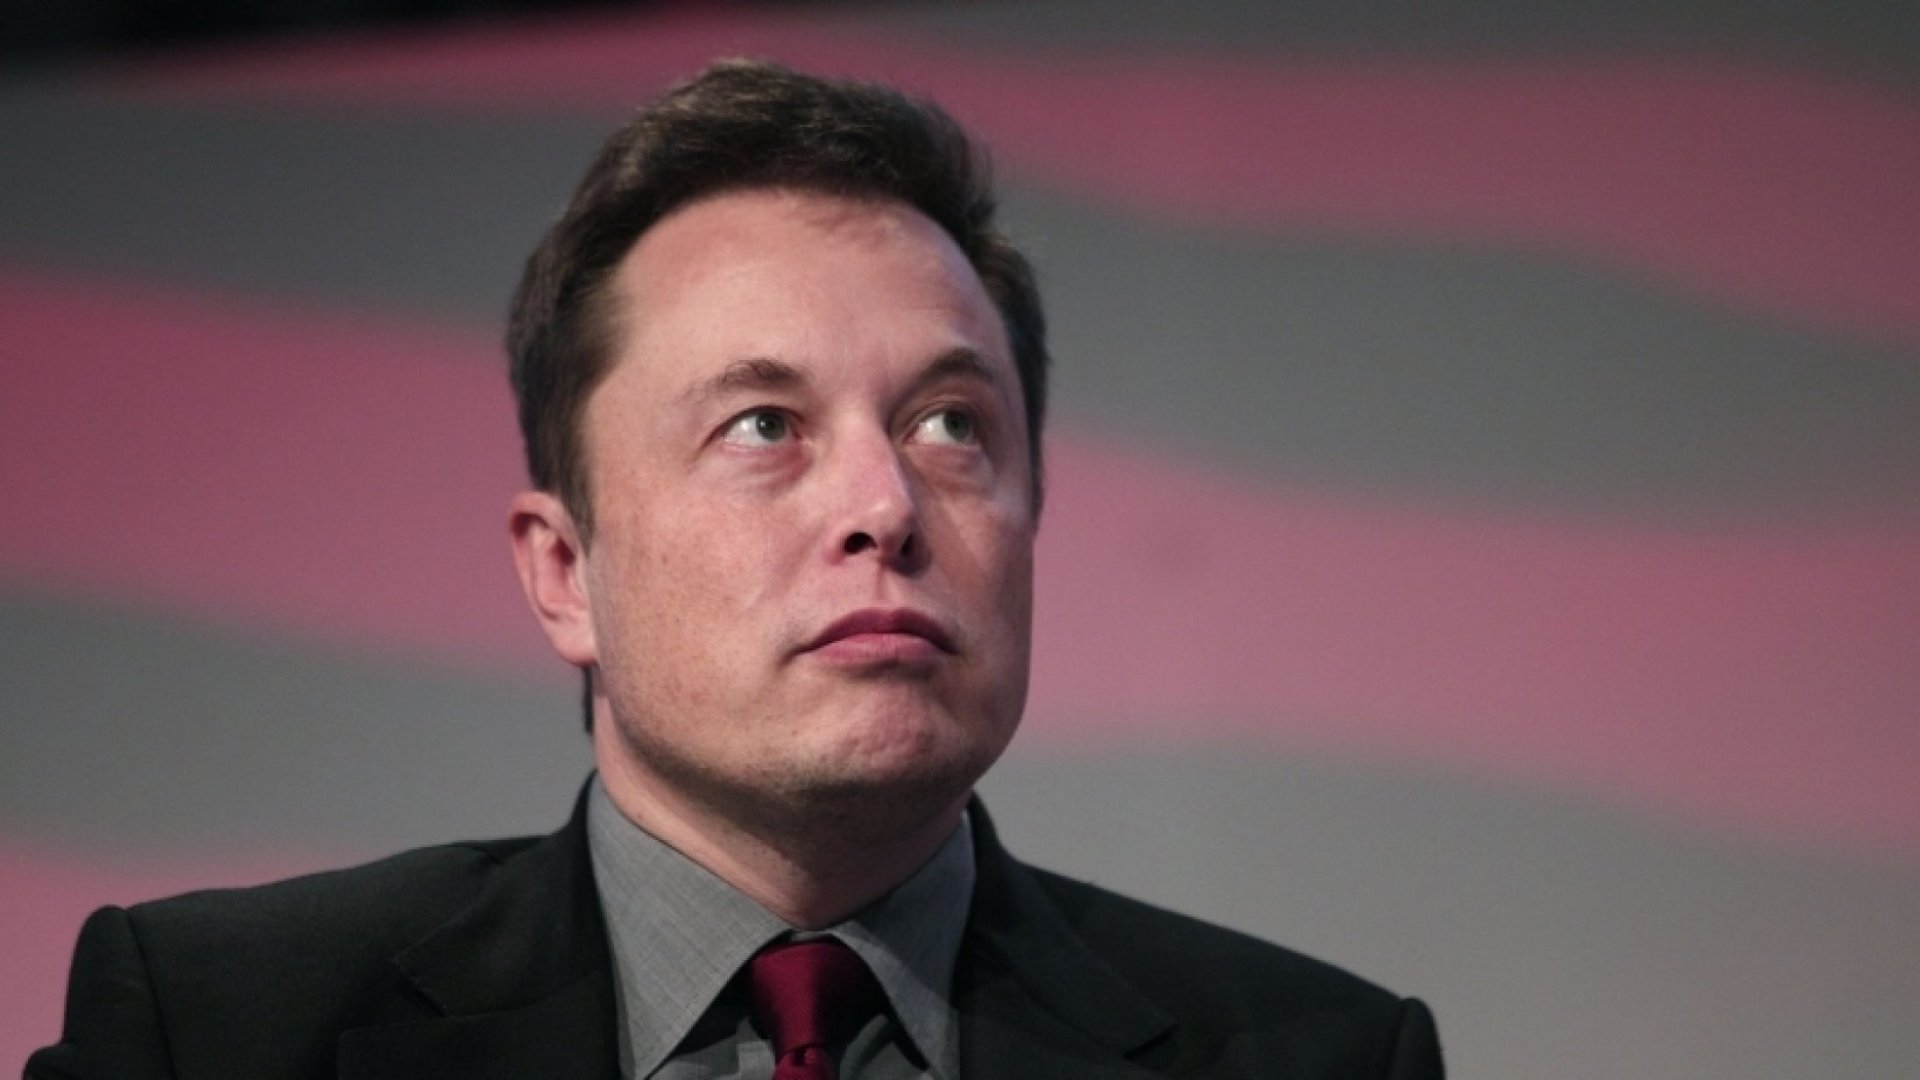 What Motivates Elon Musk Is More Complex Than It Seems